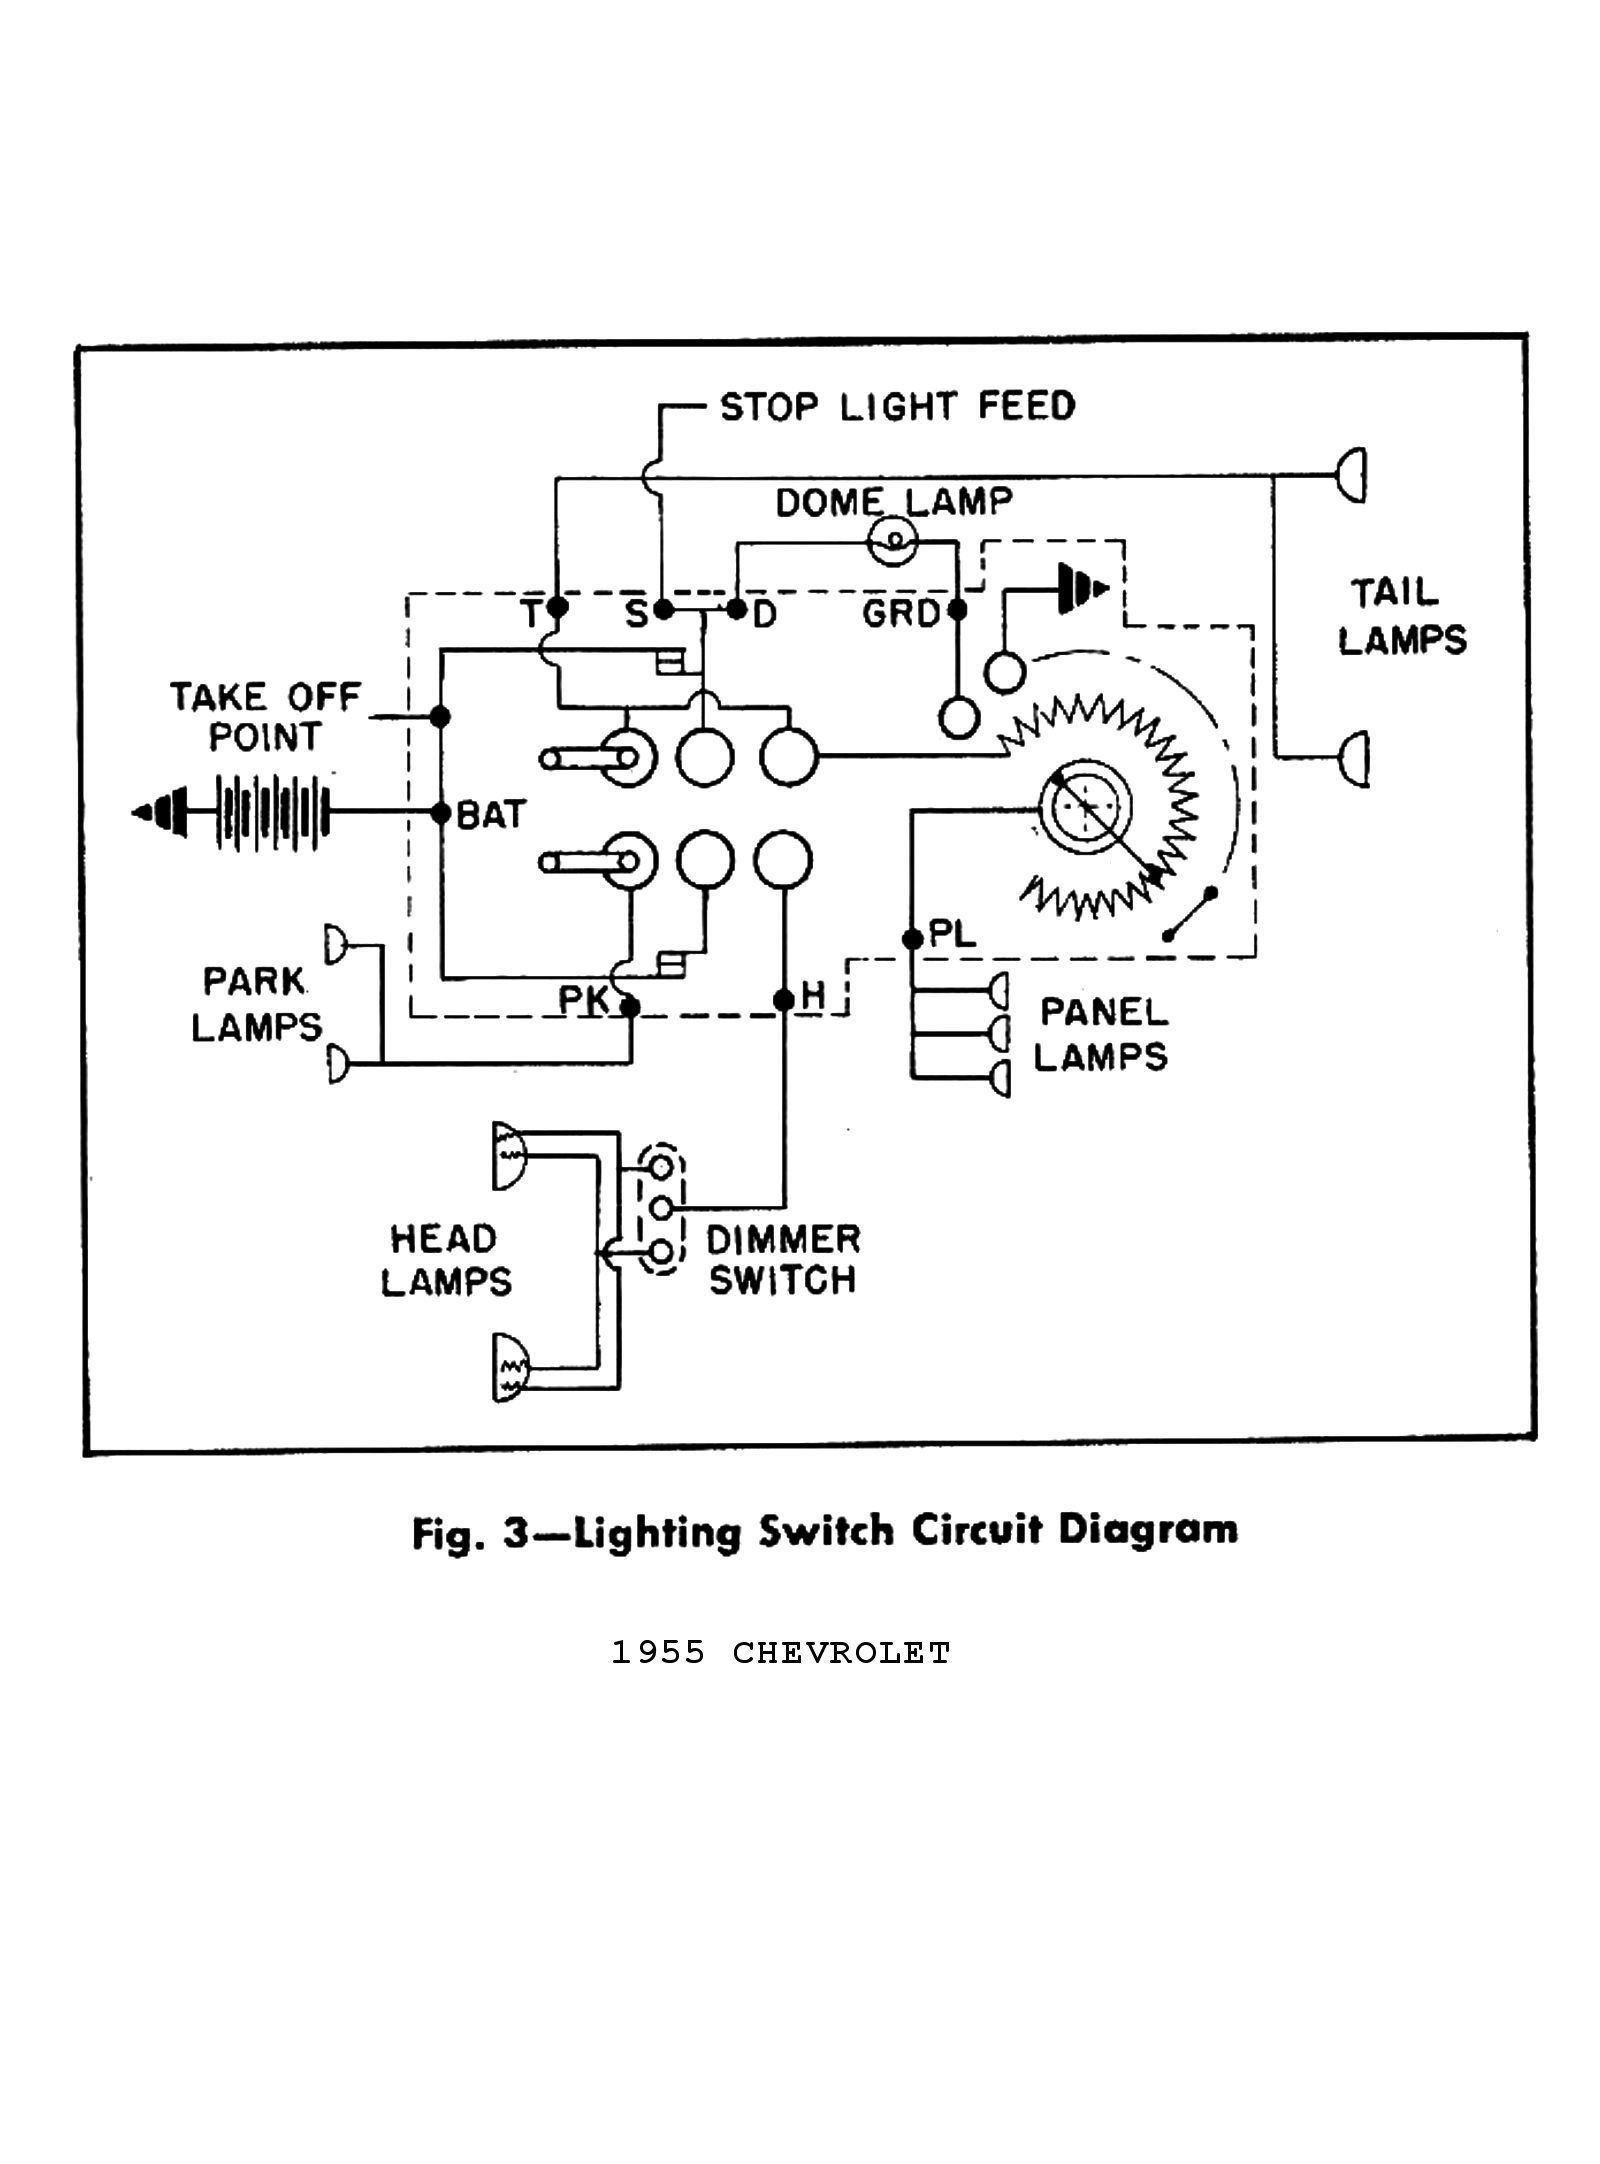 medium resolution of 64 corvette headlight switch wiring diagram wiring diagram schematicschevy truck headlight switch wiring diagram wiring diagram